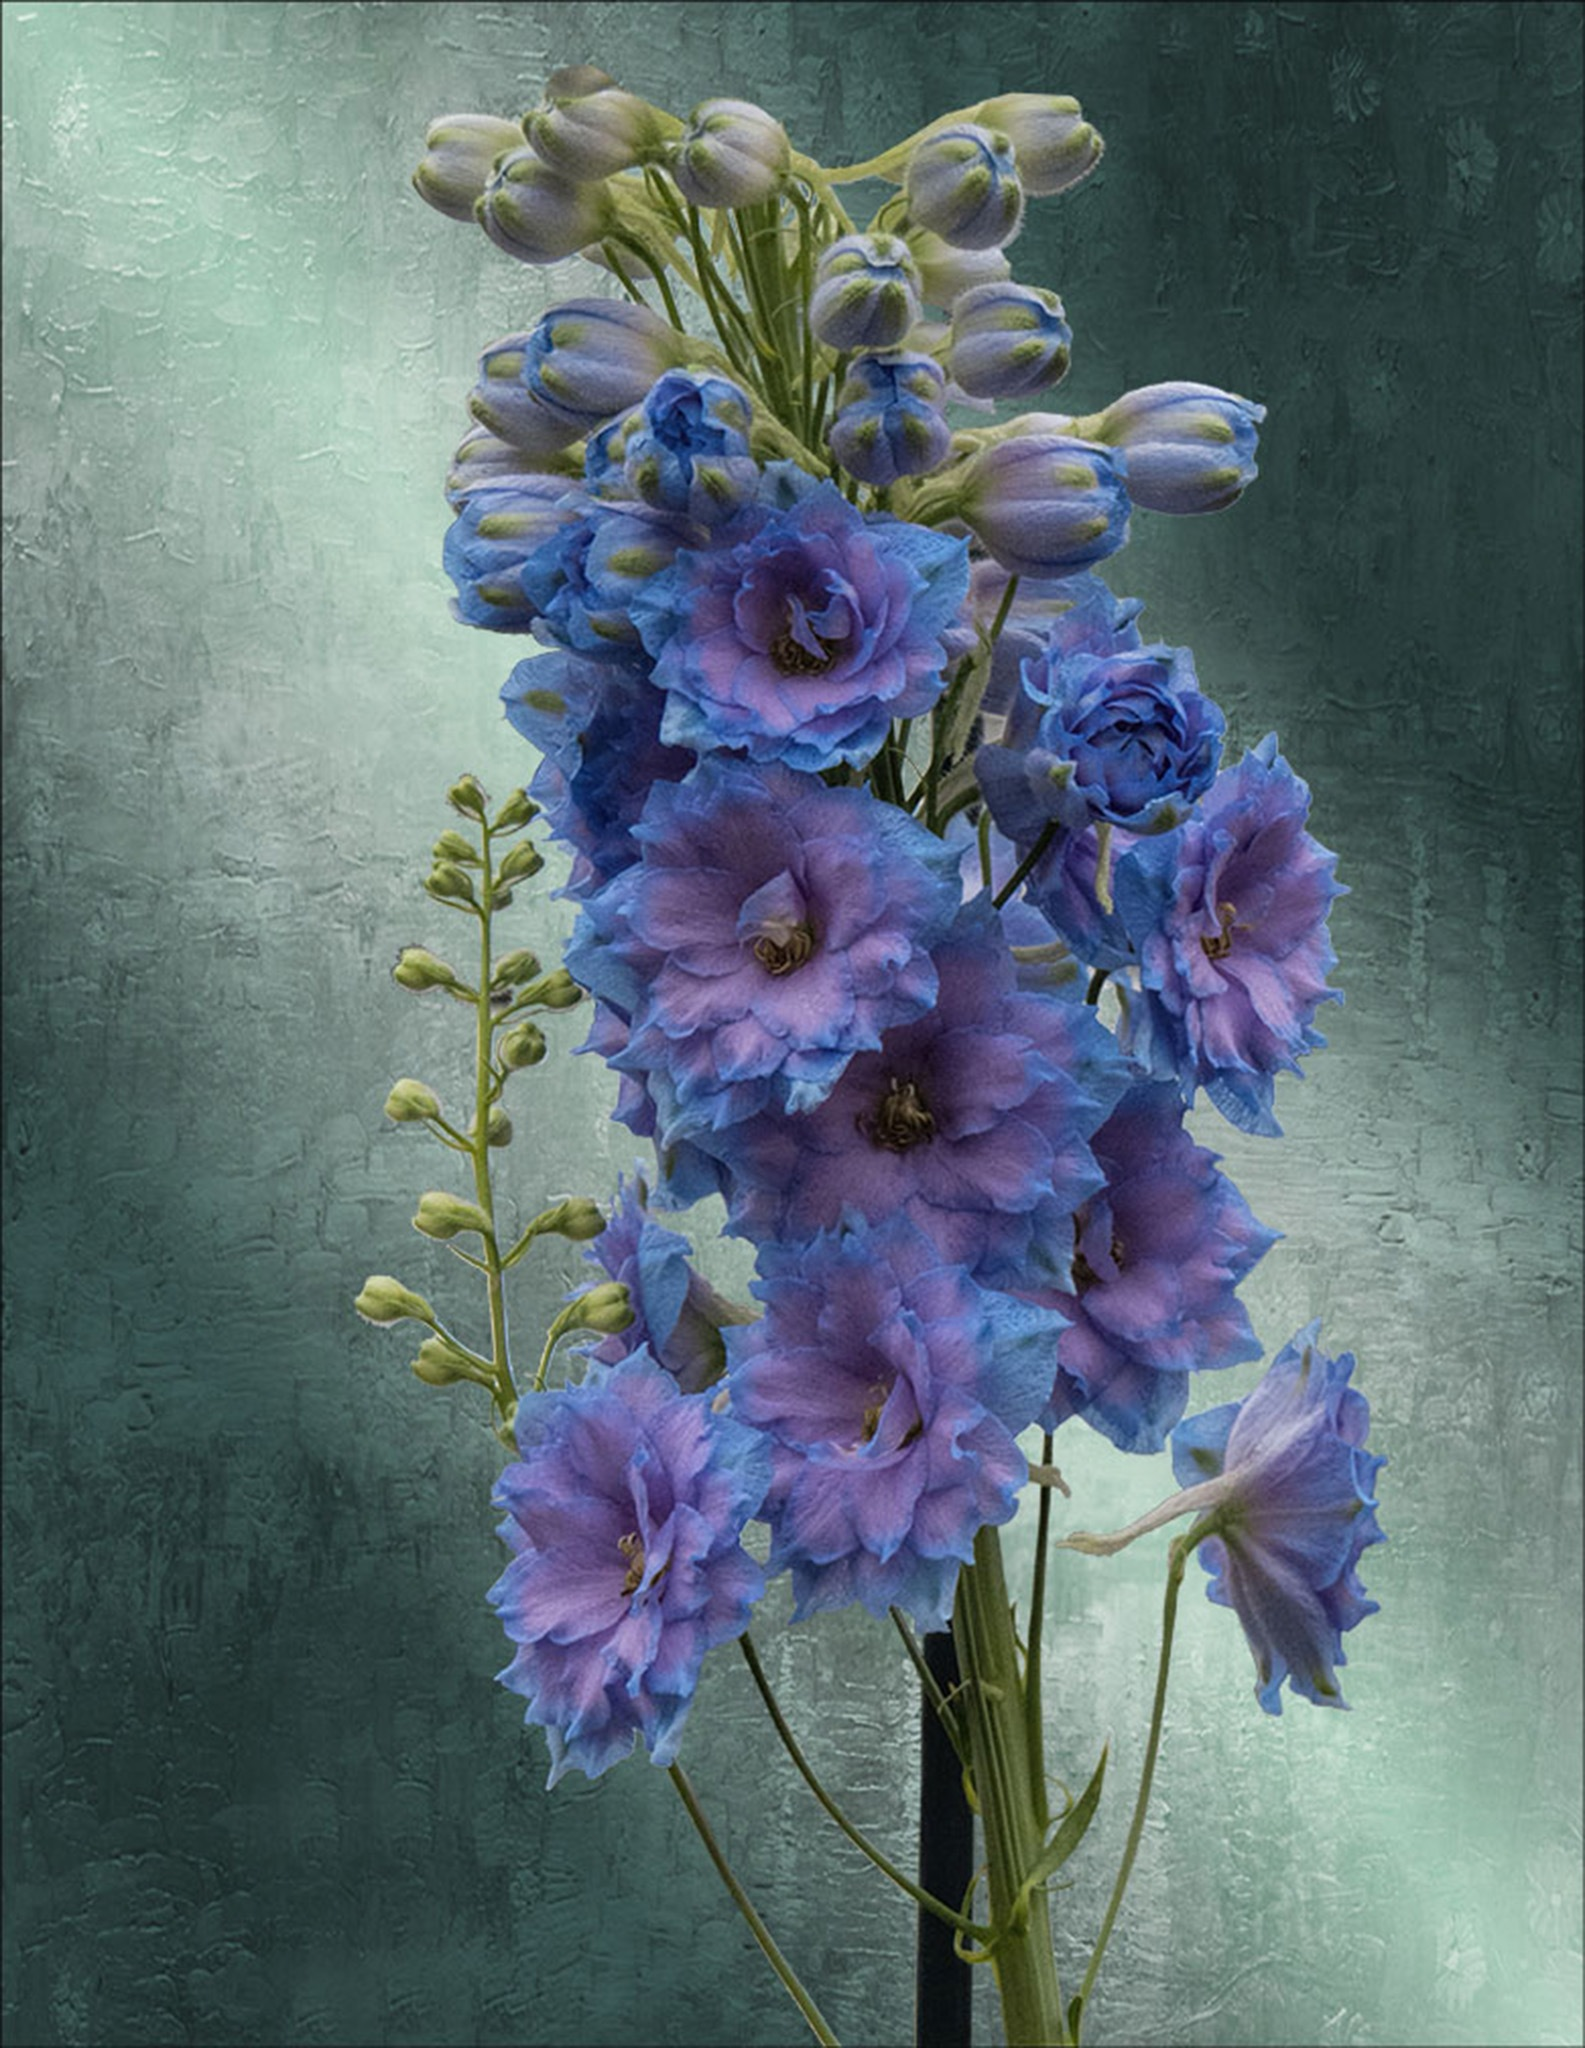 A Study in Blue and Lavendar by Bob Yankle